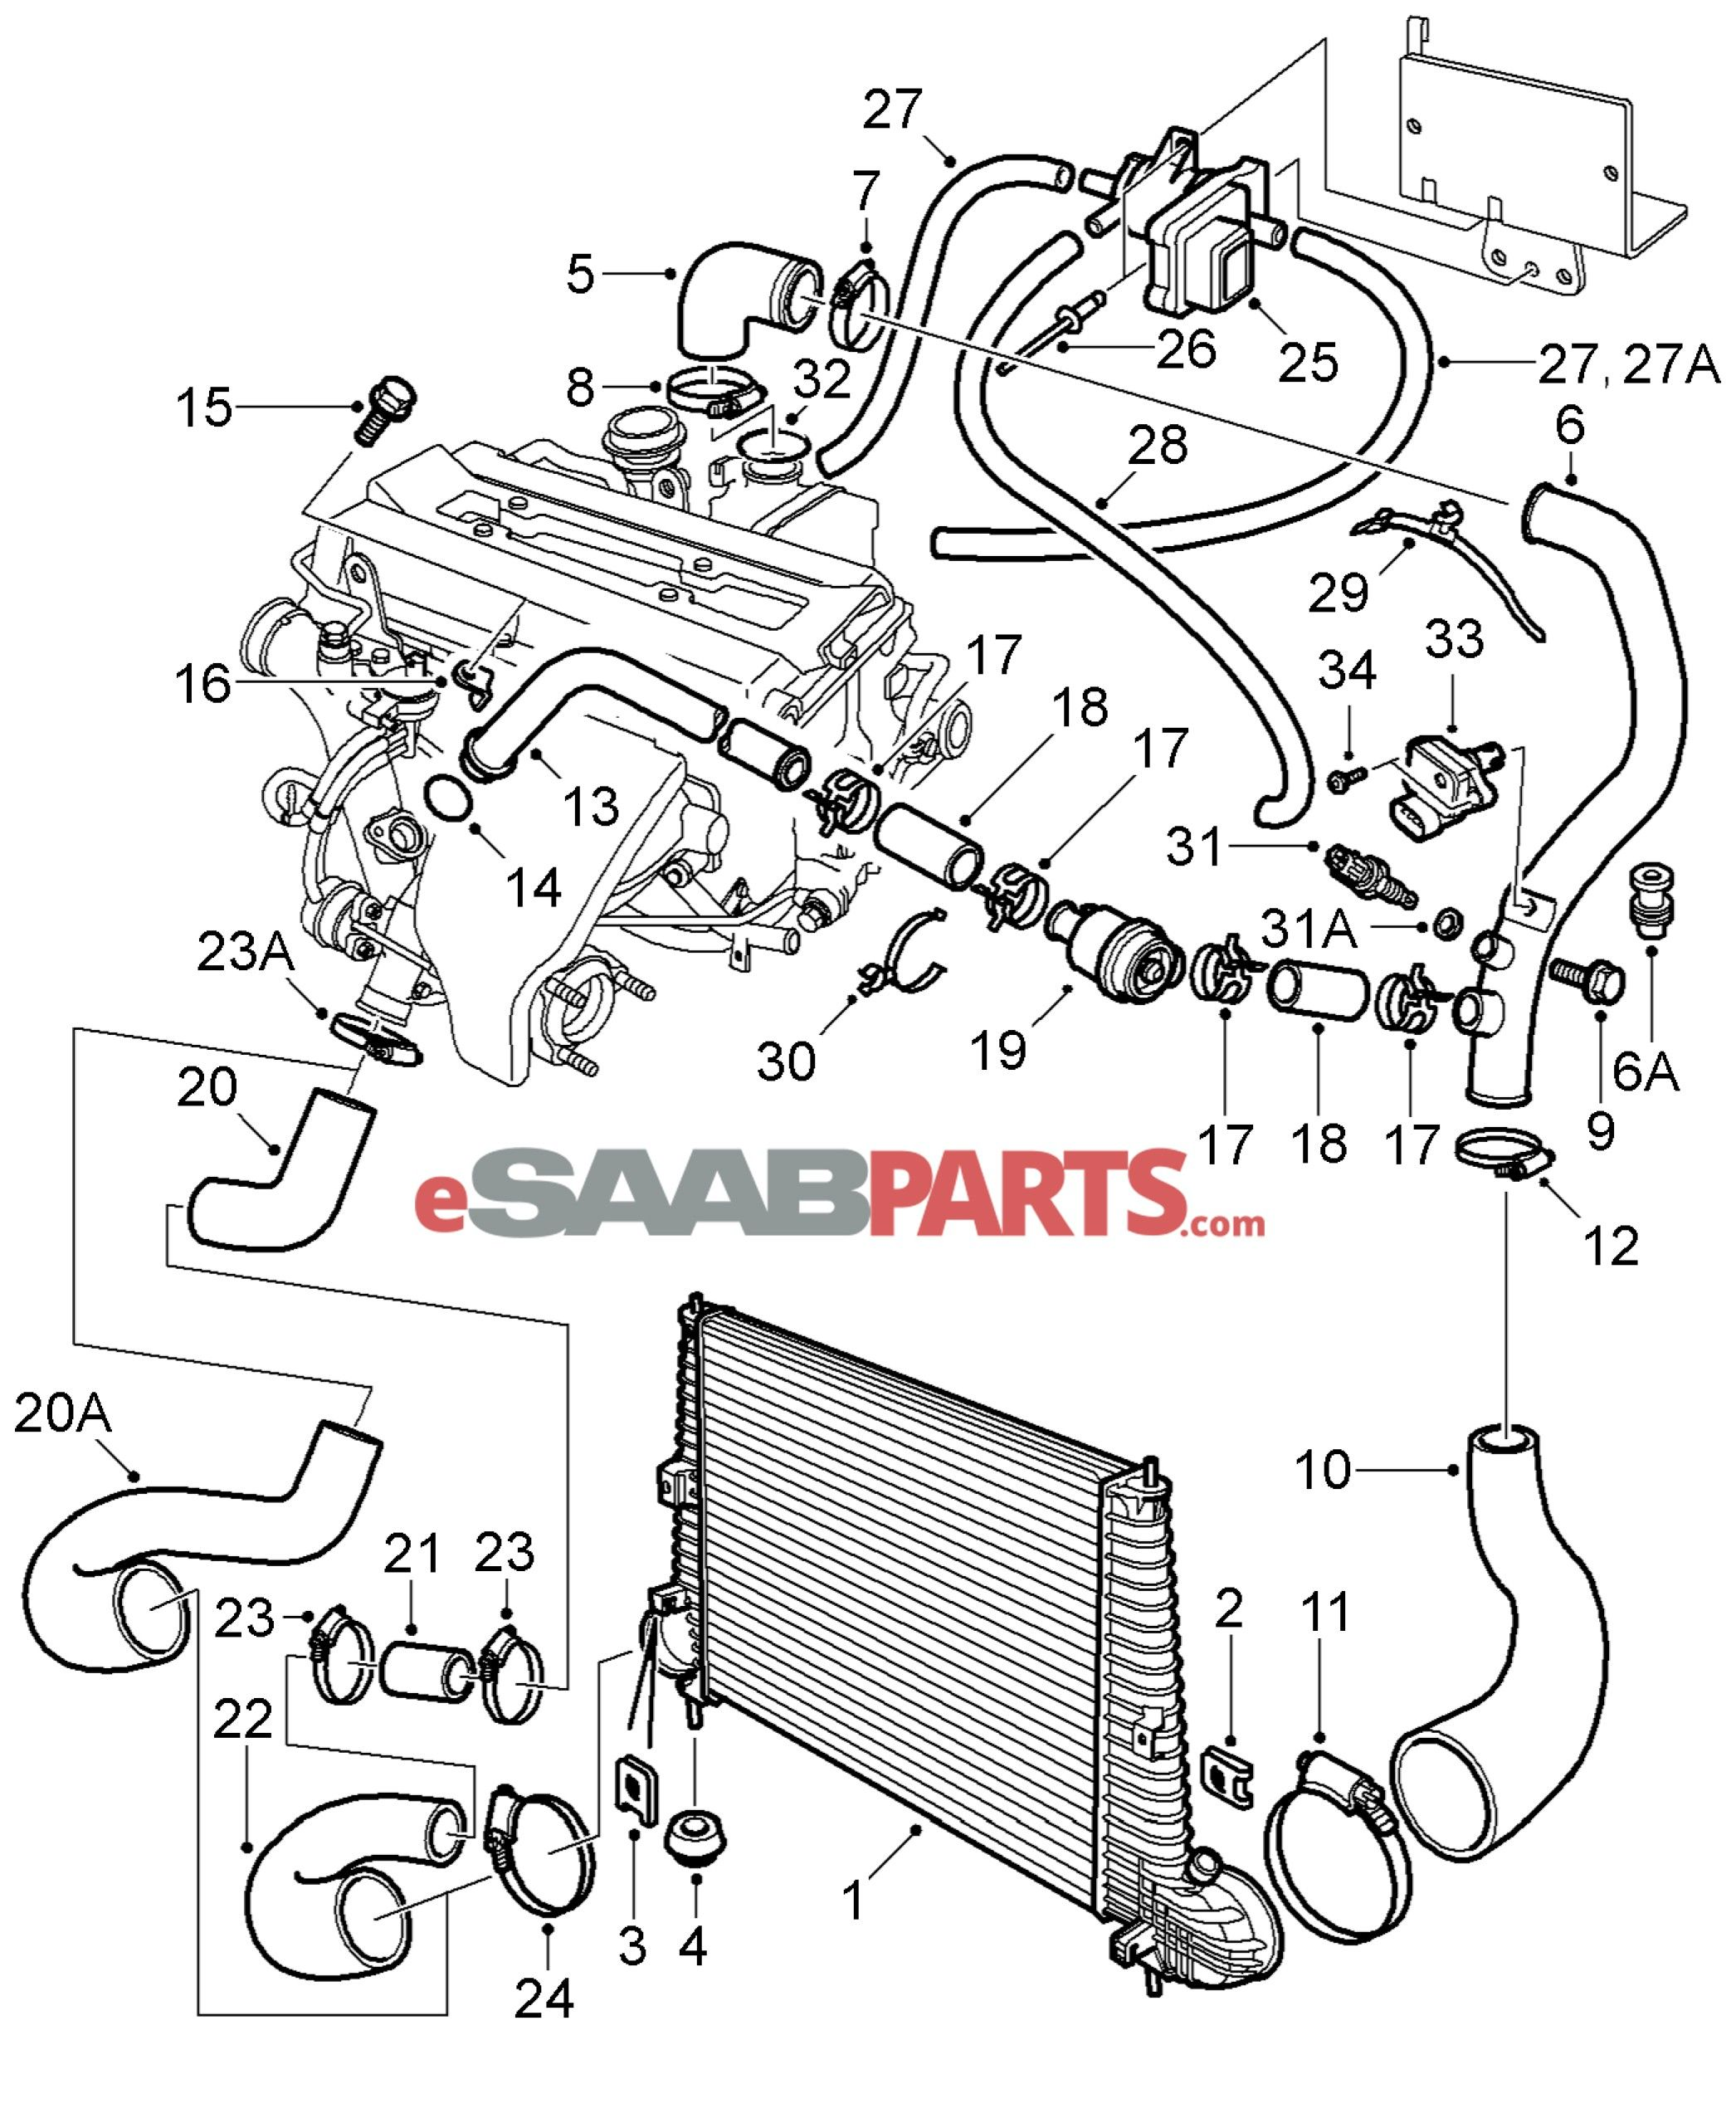 small resolution of 2005 saab 9 5 engine part diagram basic guide wiring diagram u2022 rh hydrasystemsllc com 99 saab 9 5 specs 99 saab 9 5 specs